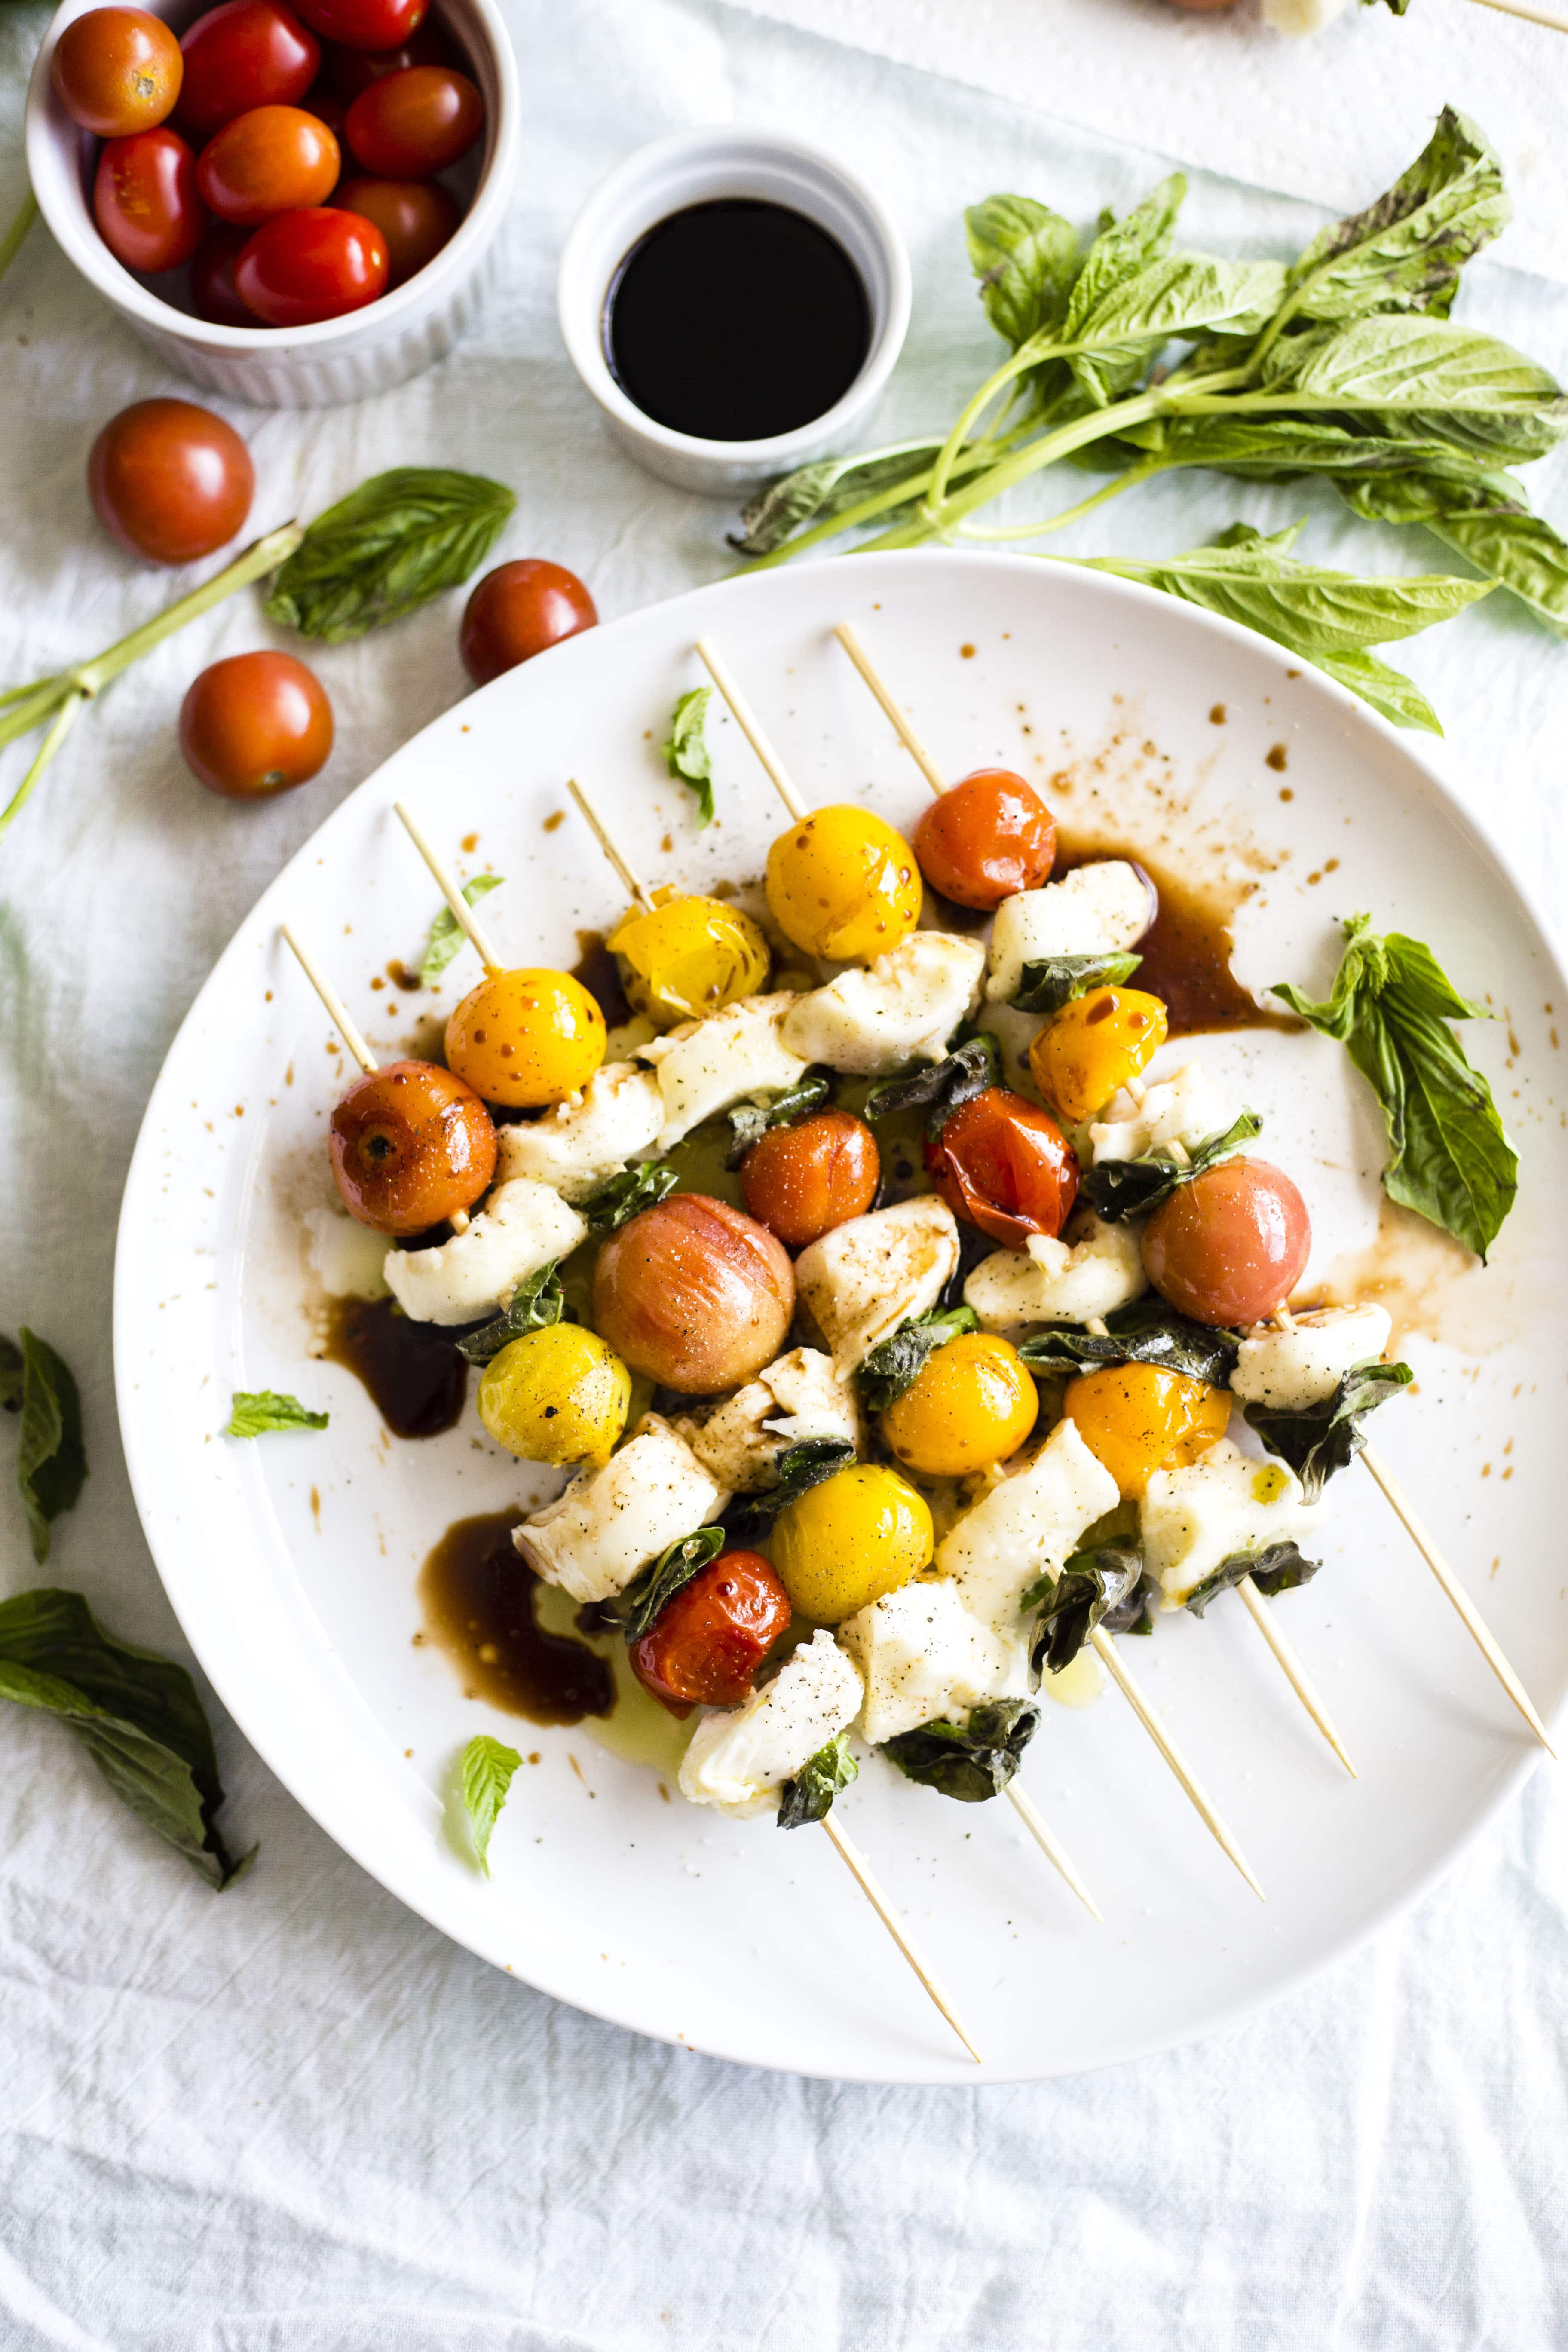 Baked Caprese Kebabs   No grill? No problem! These caprese kebabs are made in the oven and are a super simple appetizer!